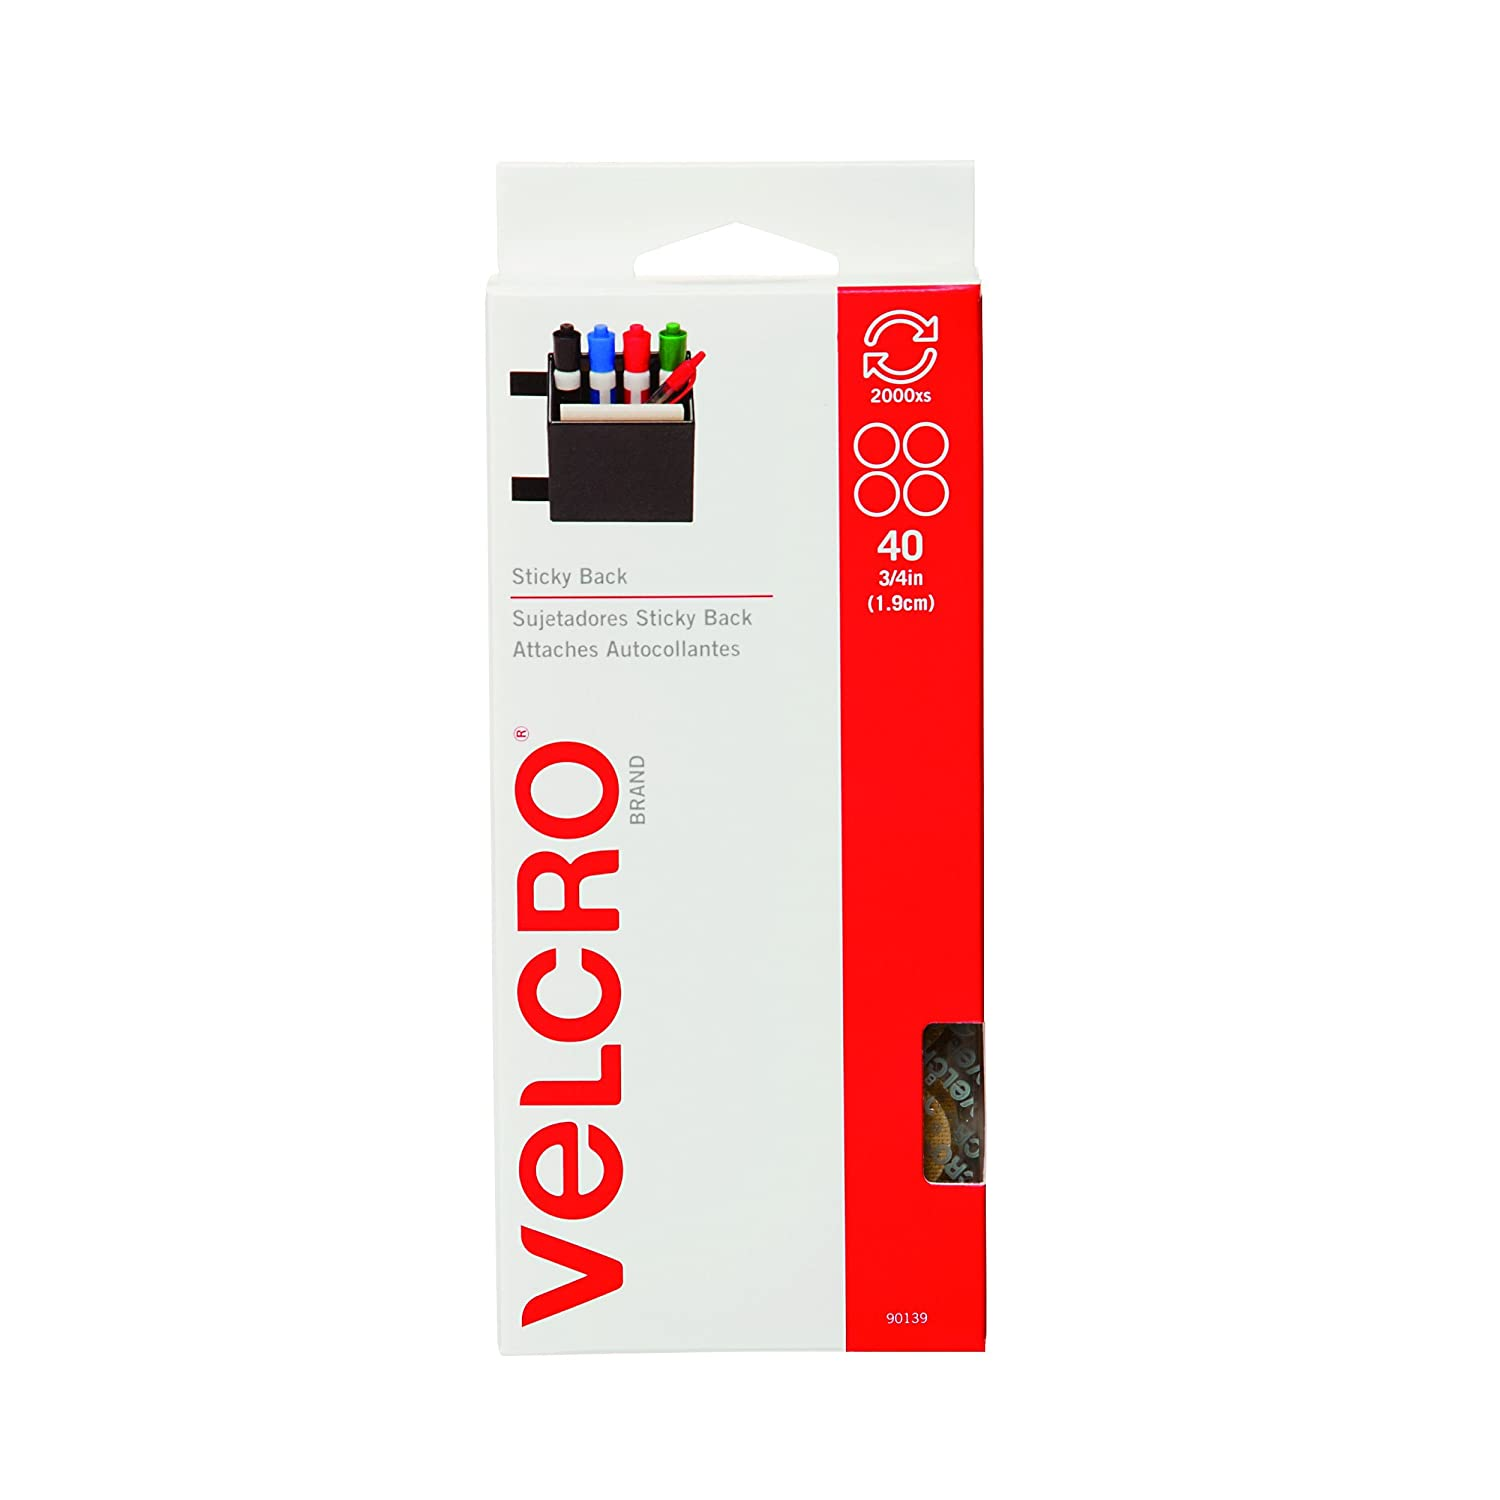 VELCRO Brand Sticky Back | Hook and Loop Fasteners | Keep Things Organized and Connected | 7/8in | 12 Squares, Black VELCRO USA VELCRO® Brand 90072